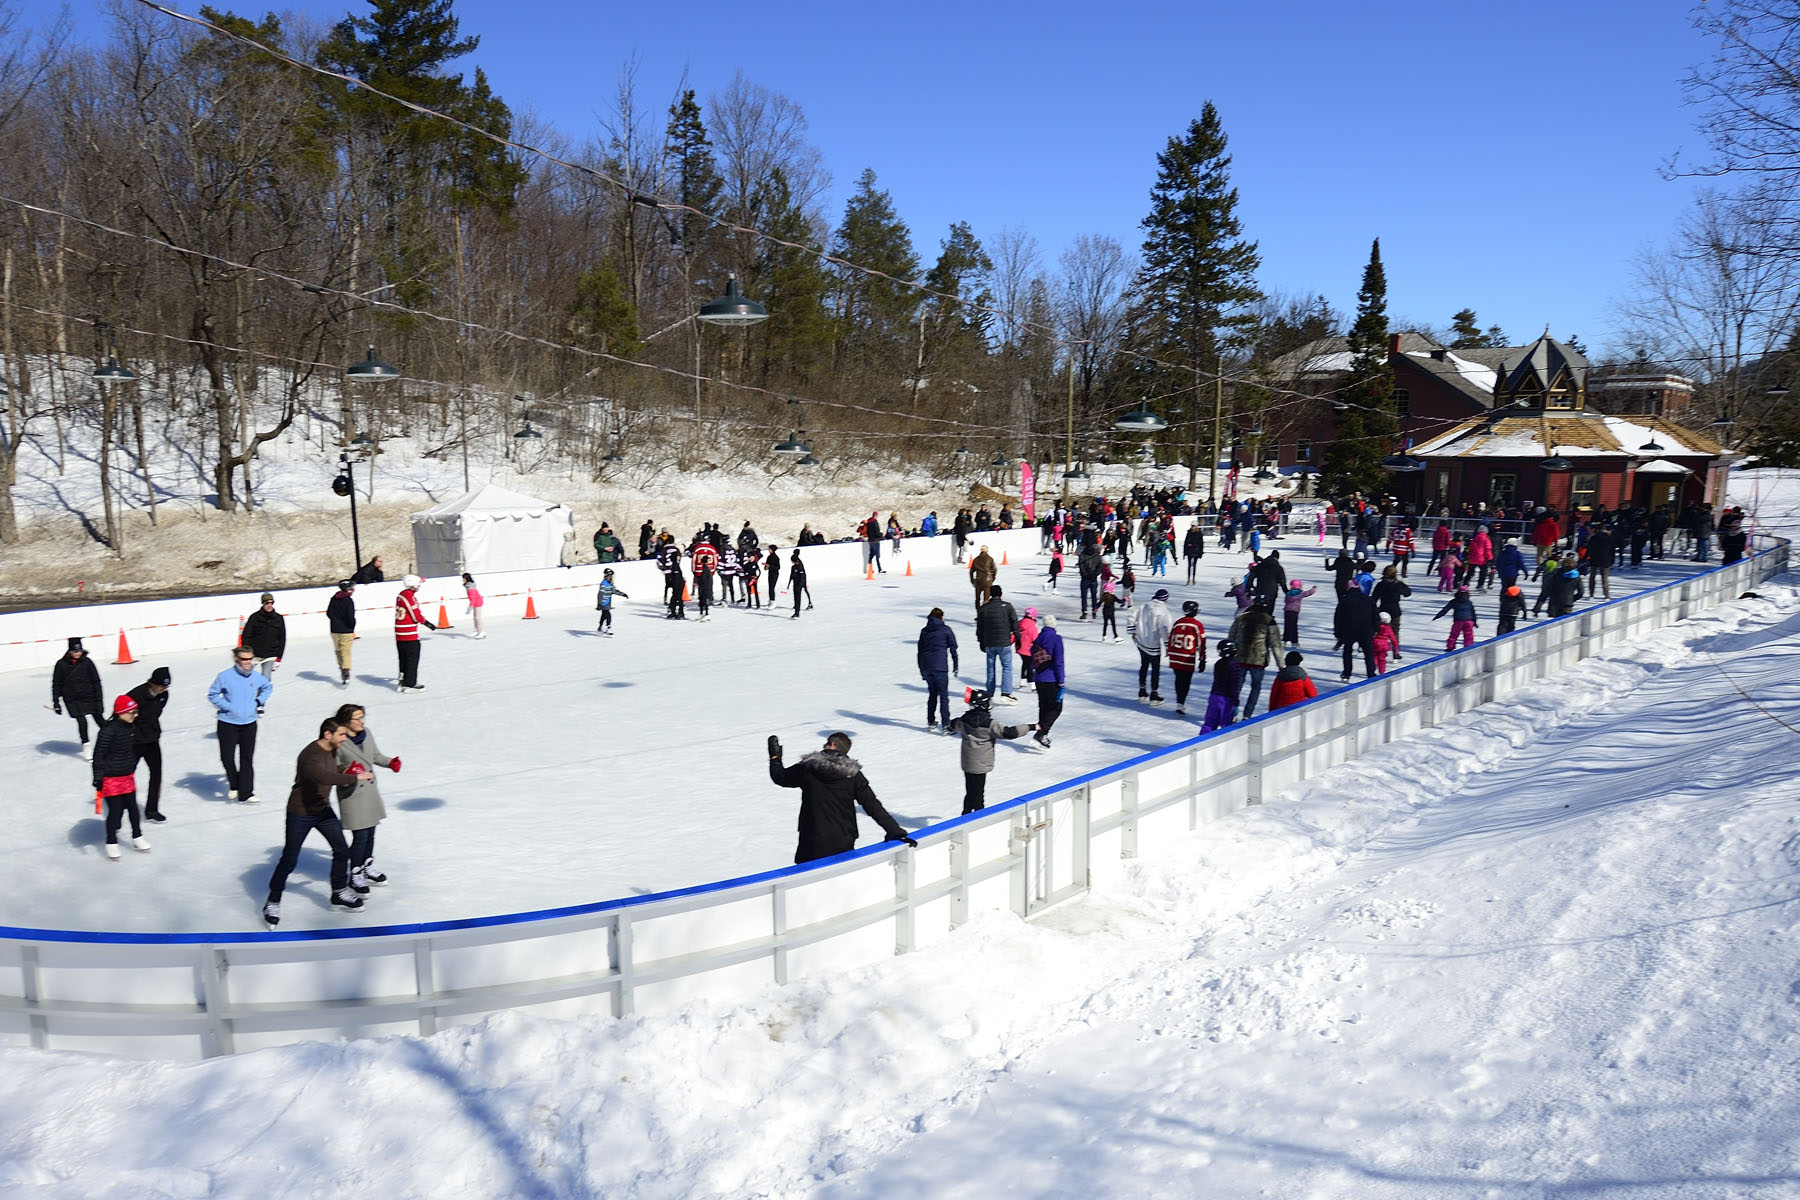 Following the event, guests and members of the public enjoyed Rideau Hall's Historic Skating Rink.